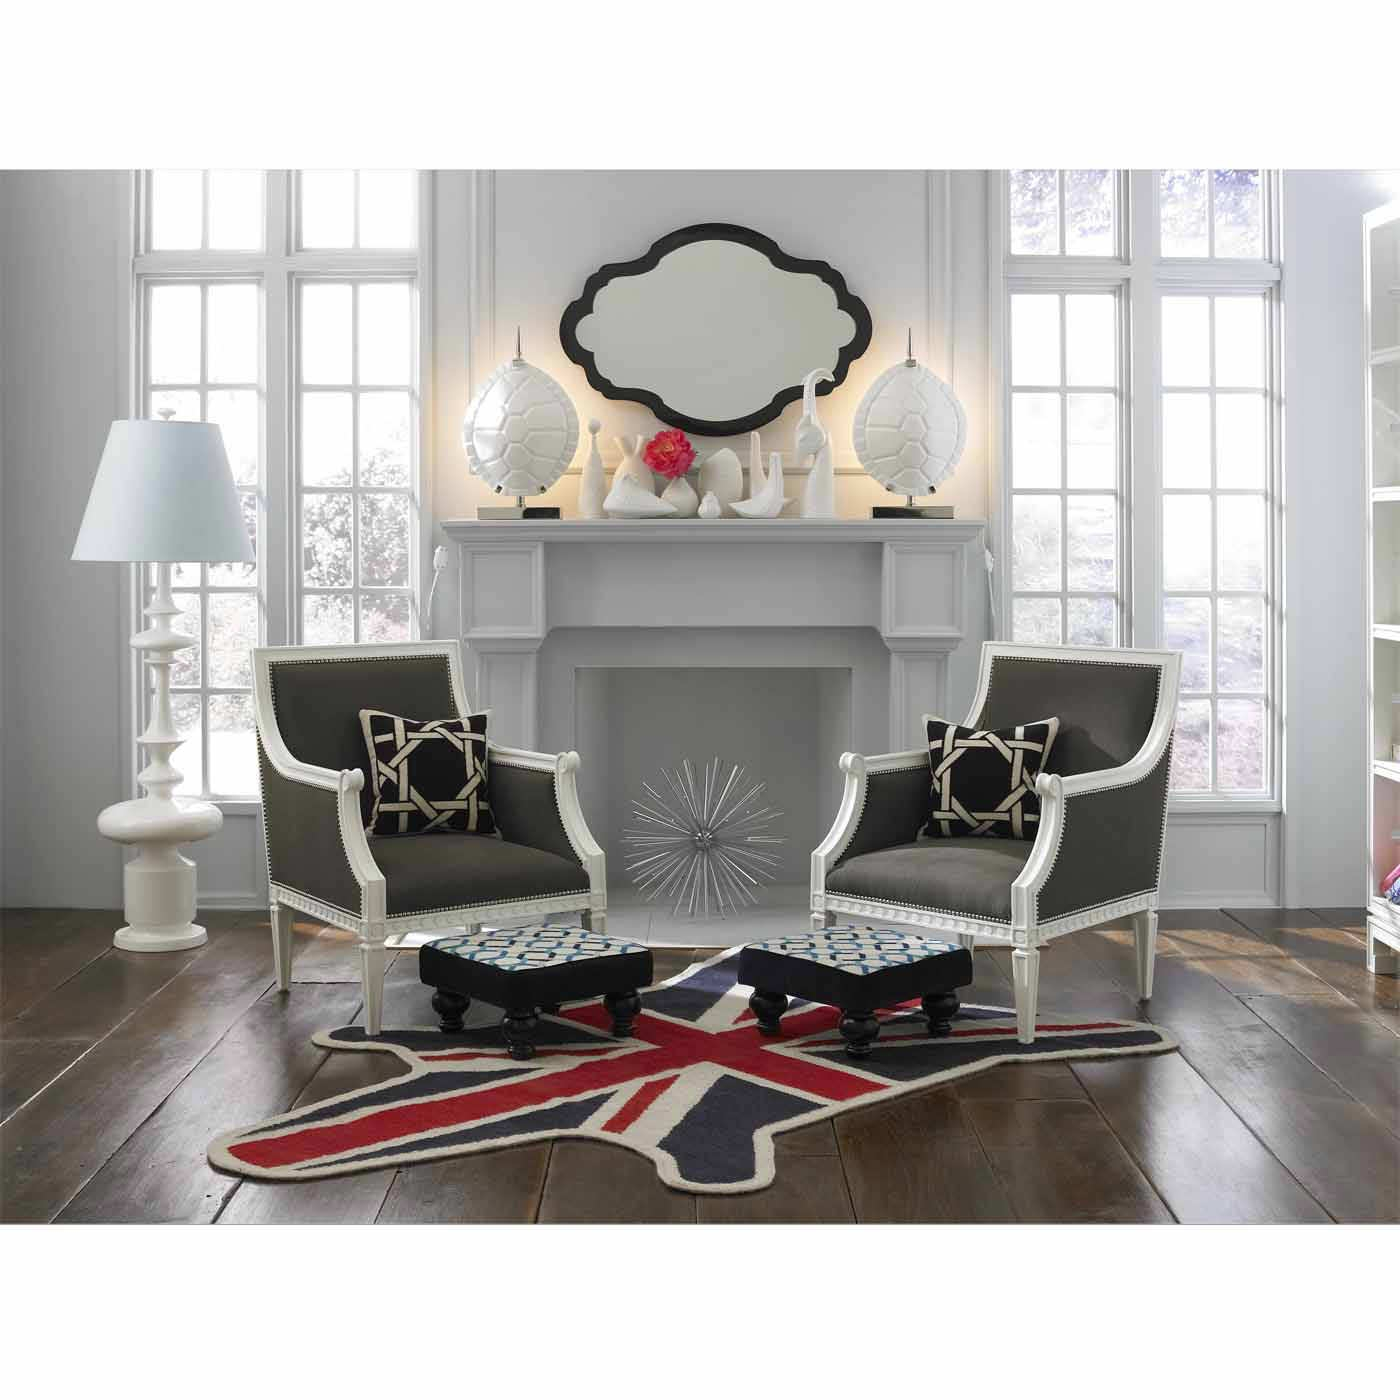 Zebra British Flag Peruvian Llama Flat Weave Rug Modern Holding Regarding British Flag Rugs (View 14 of 15)